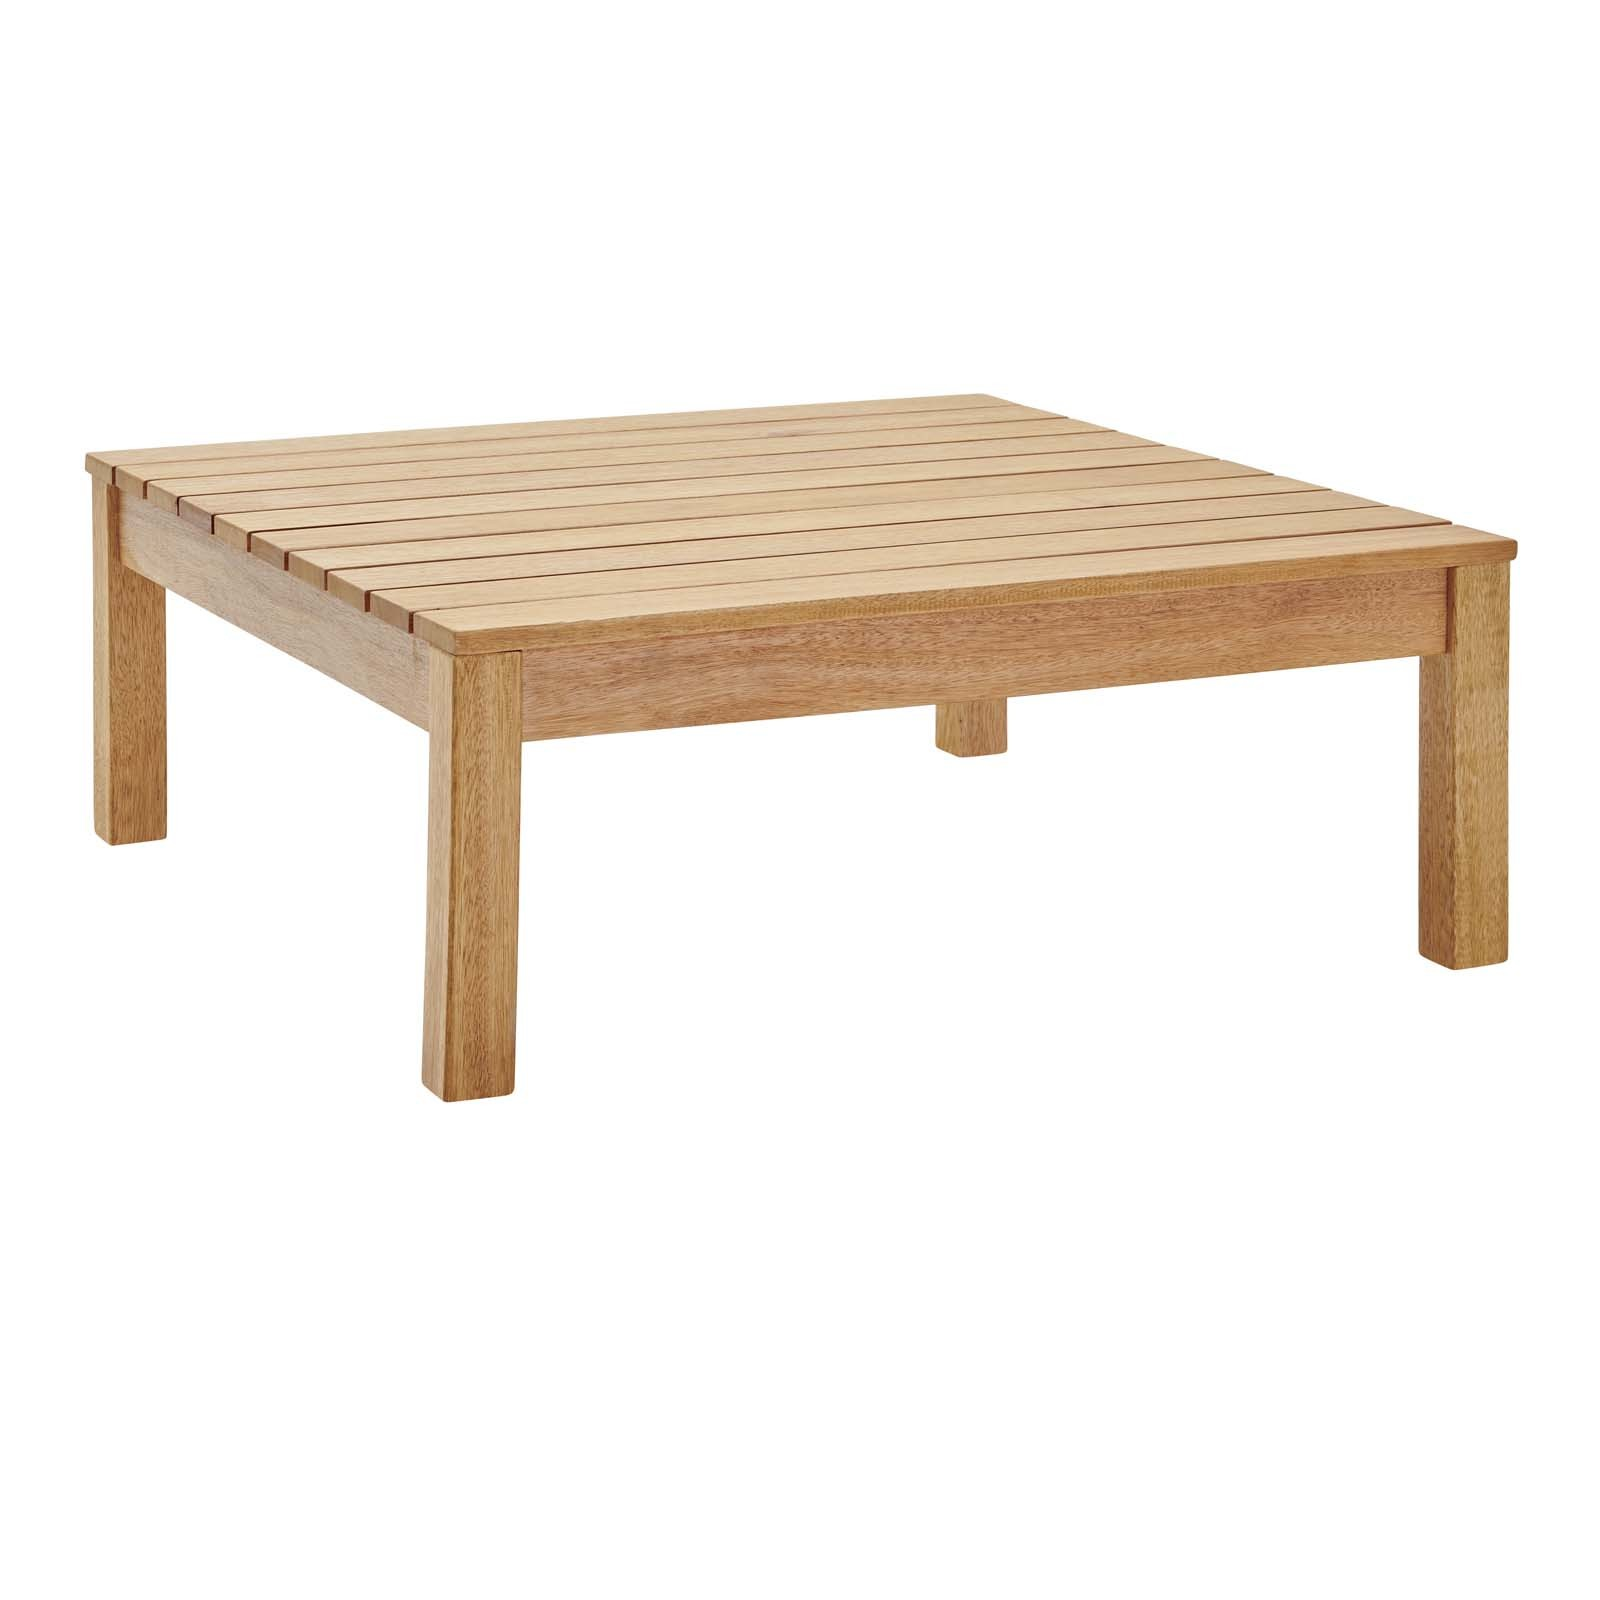 Freeport Outdoor Patio Patio Coffee Table in Natural